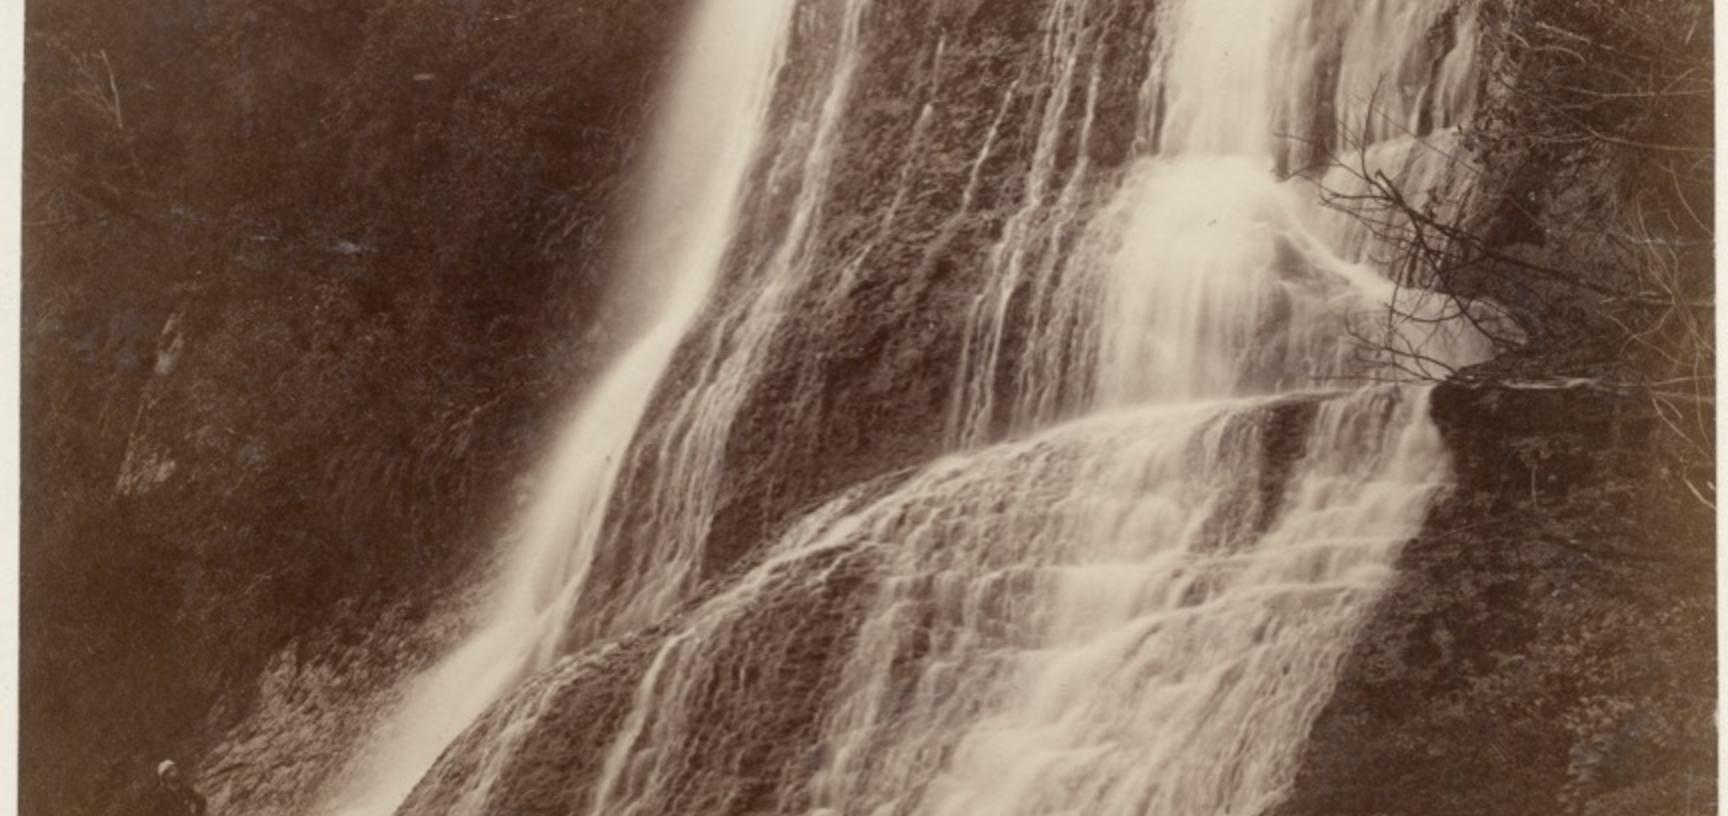 Paparoa Falls near Whenuatere on the Whanganui River. Photograph by Alfred Burton for the Burton Brothers studio (Dunedin). North Island, New Zealand. 18 May 1885. (Copyright Pitt Rivers Museum, University of Oxford. Accession Number: 1998.243.36.3)